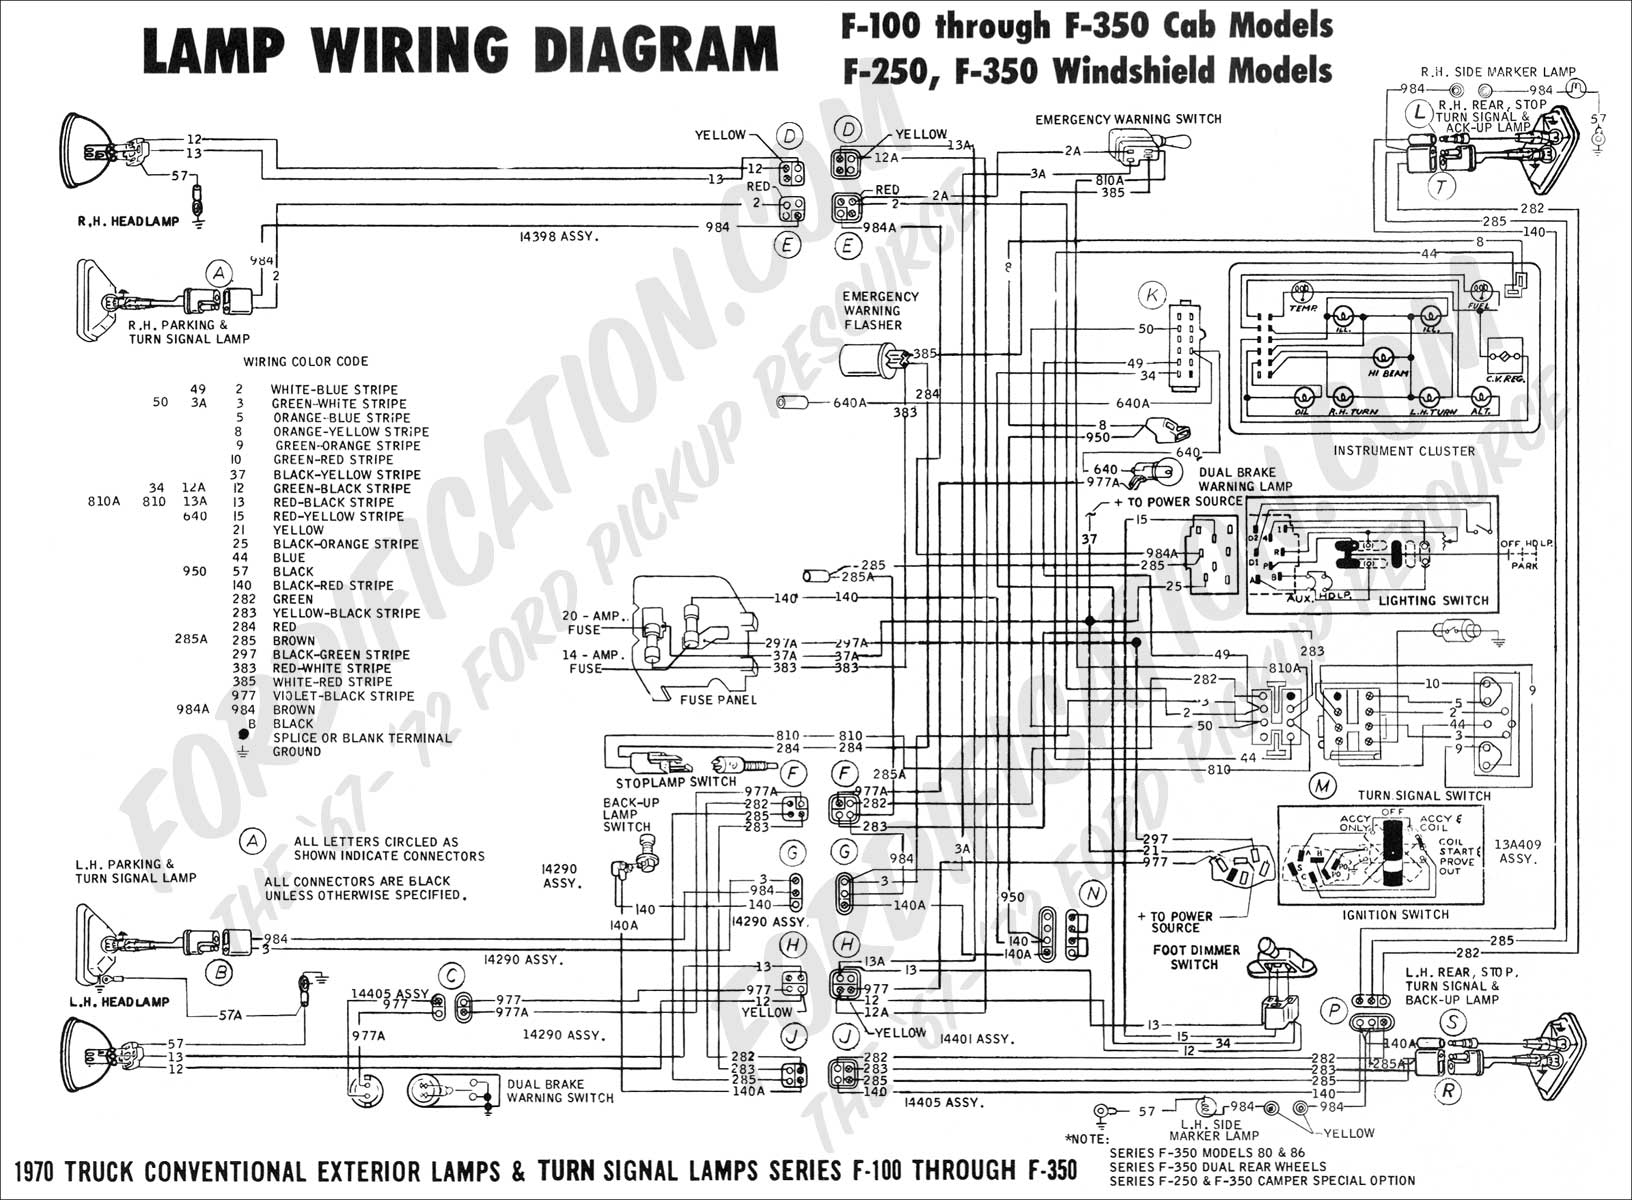 2003 Ford Excursion Wiring Diagram - Wiring Diagram Data Oreo - Ford Trailer Plug Wiring Diagram